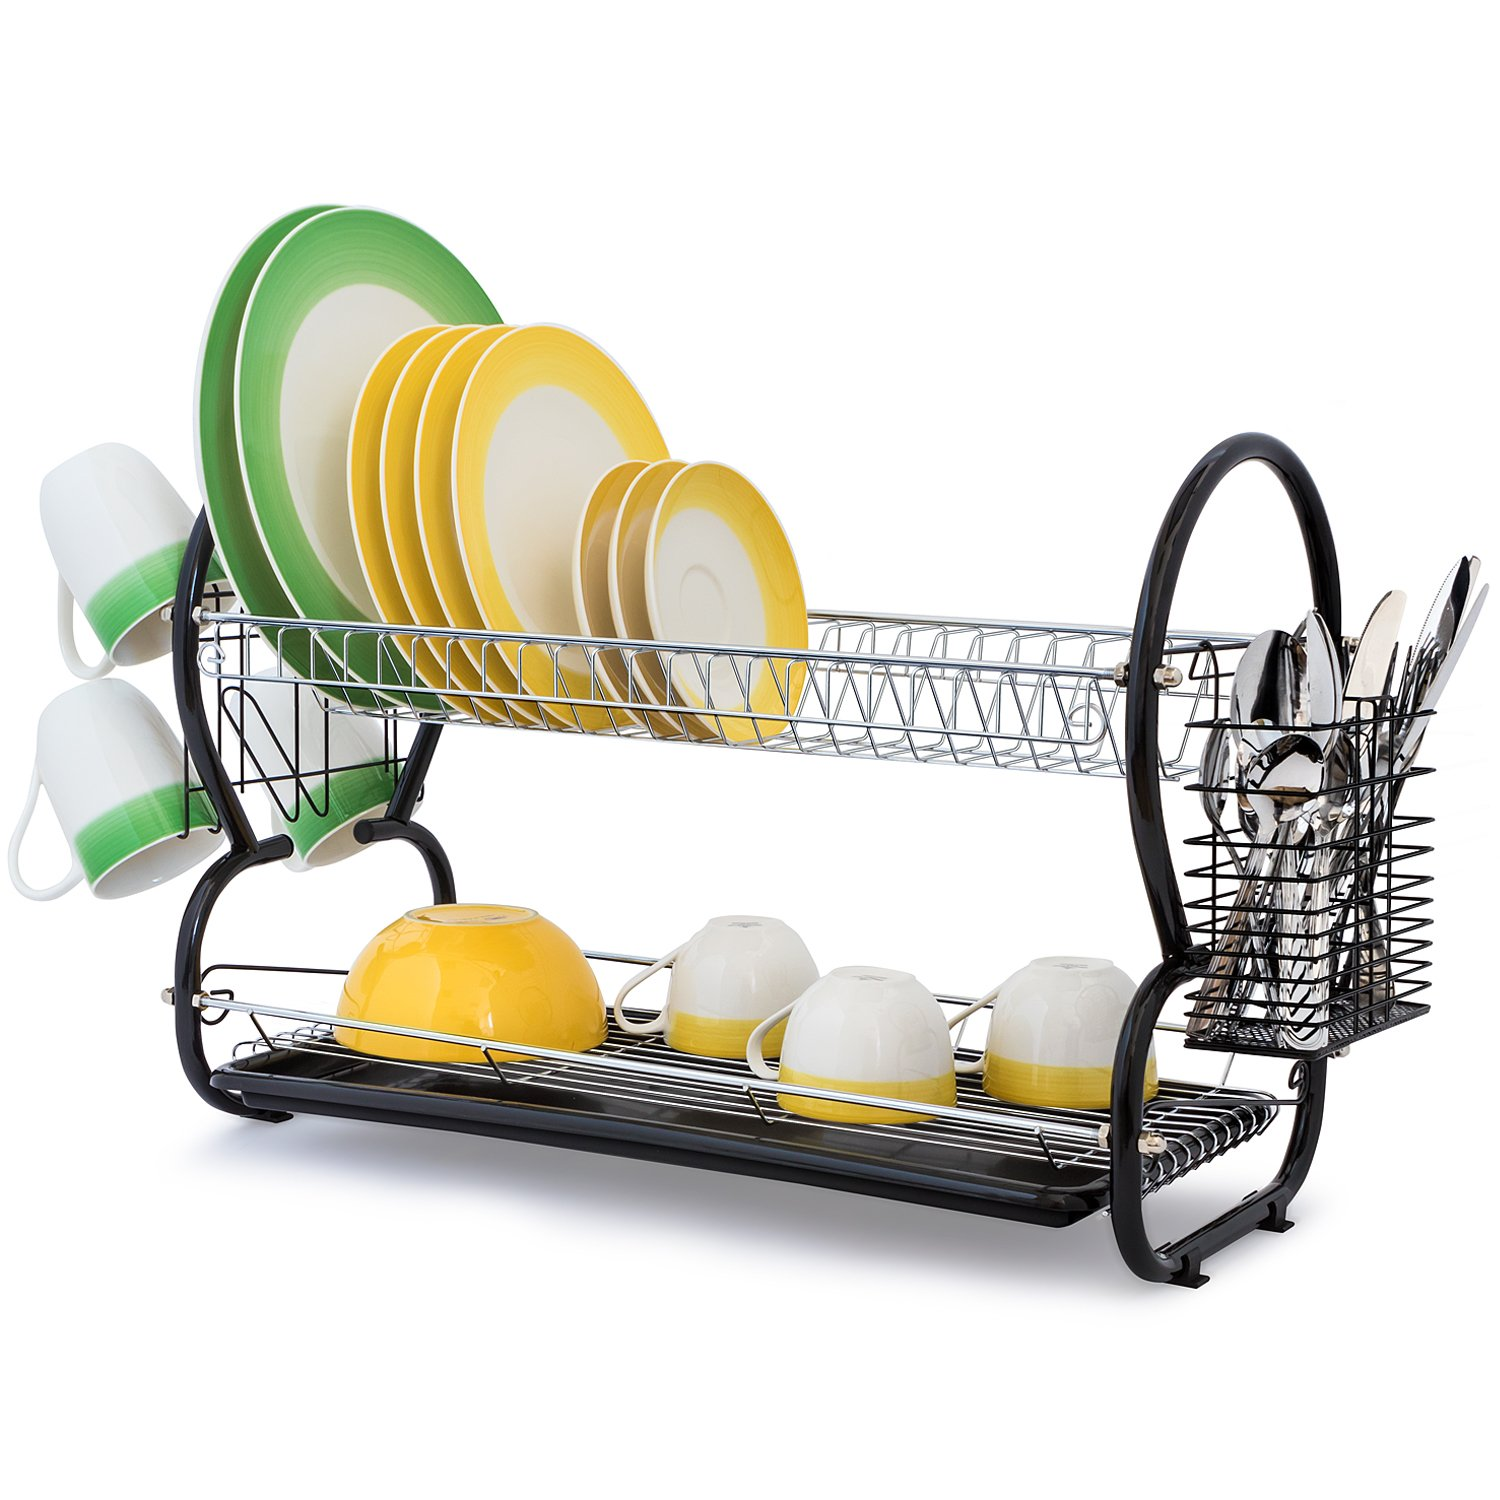 Artmoon Desert Large Dish Drainer Drying Rack 2-Tier Mugs and Cutlery Holder Removable Tray, Chromed Steel